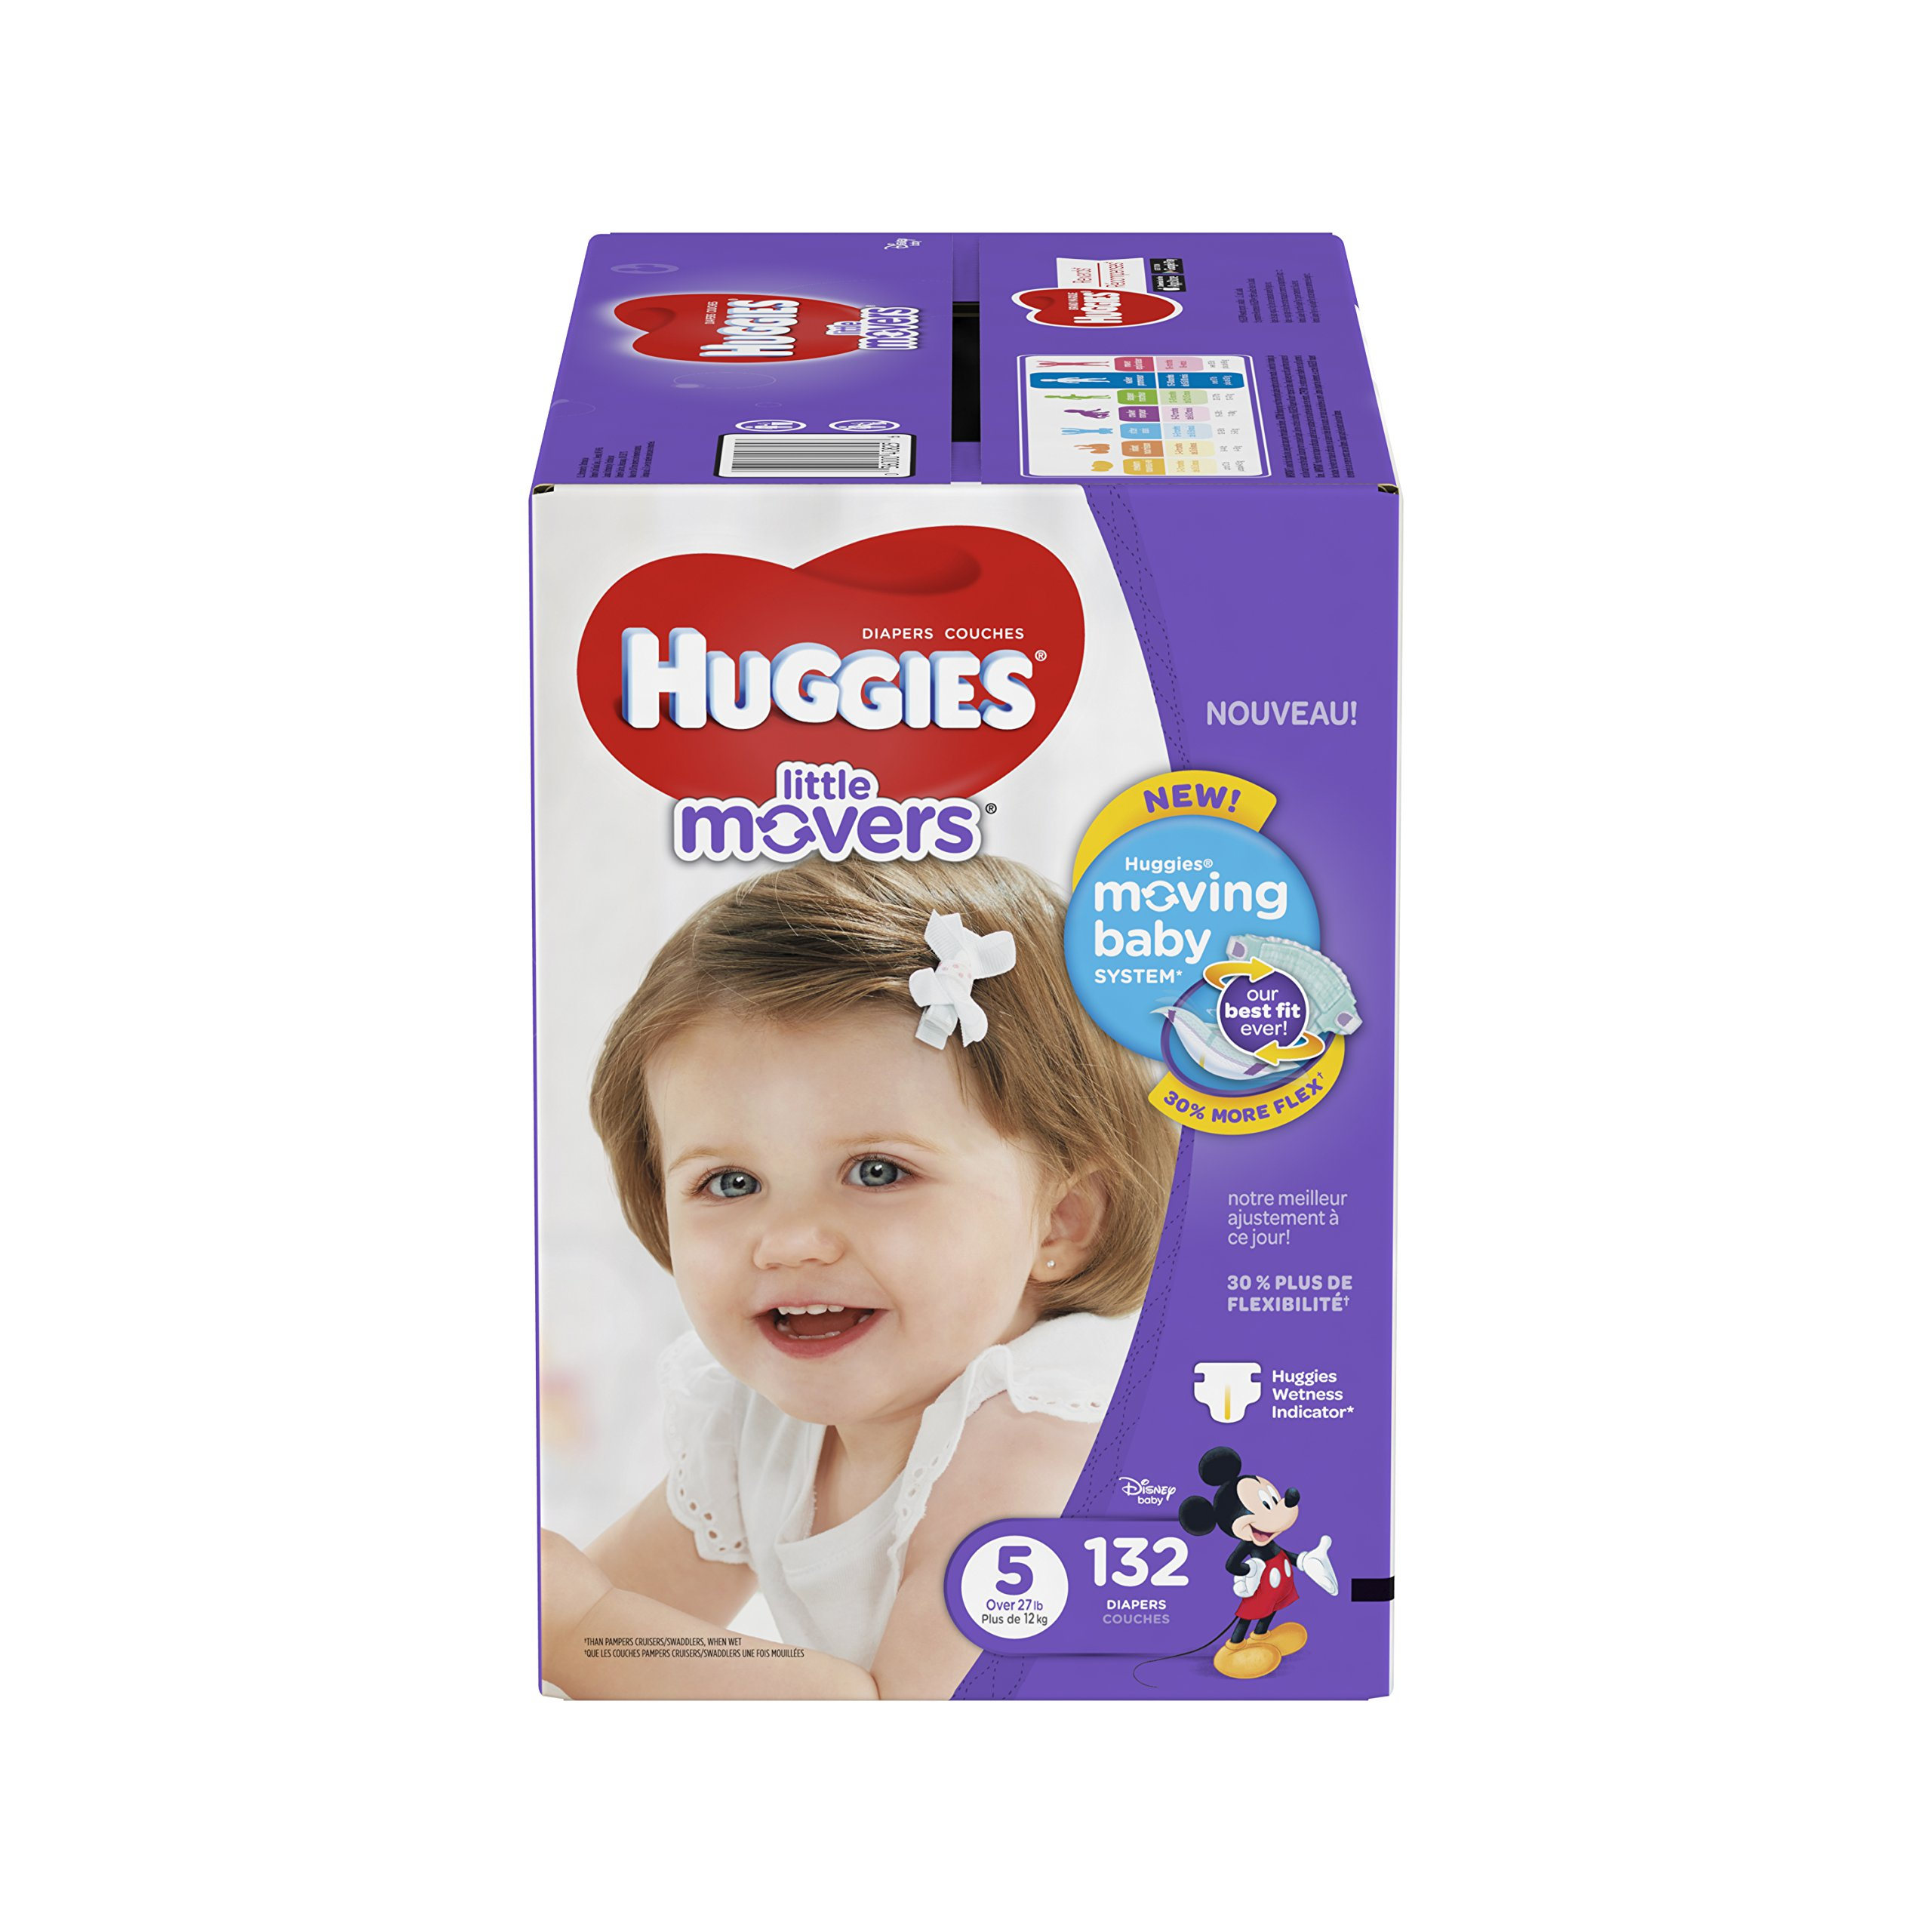 HUGGIES Little Movers Diapers, Size 5, 132 Count (Packaging May Vary)